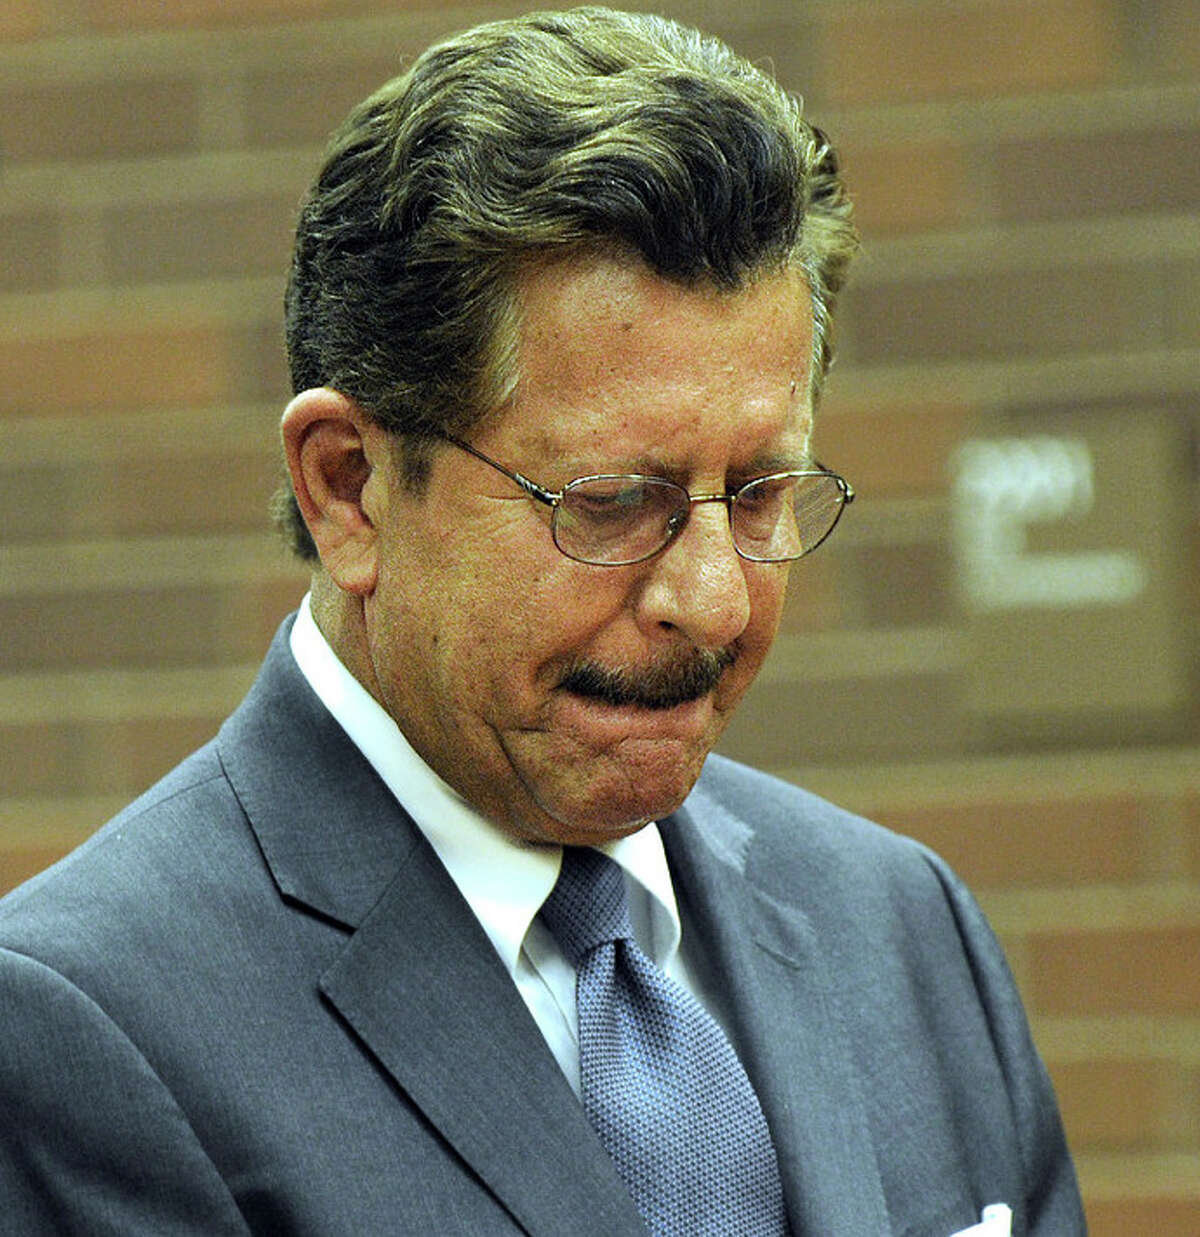 Embattled Danbury Democratic Party leader Gene Eriquez in Superior Court, where he is facing domestic abuse charges.